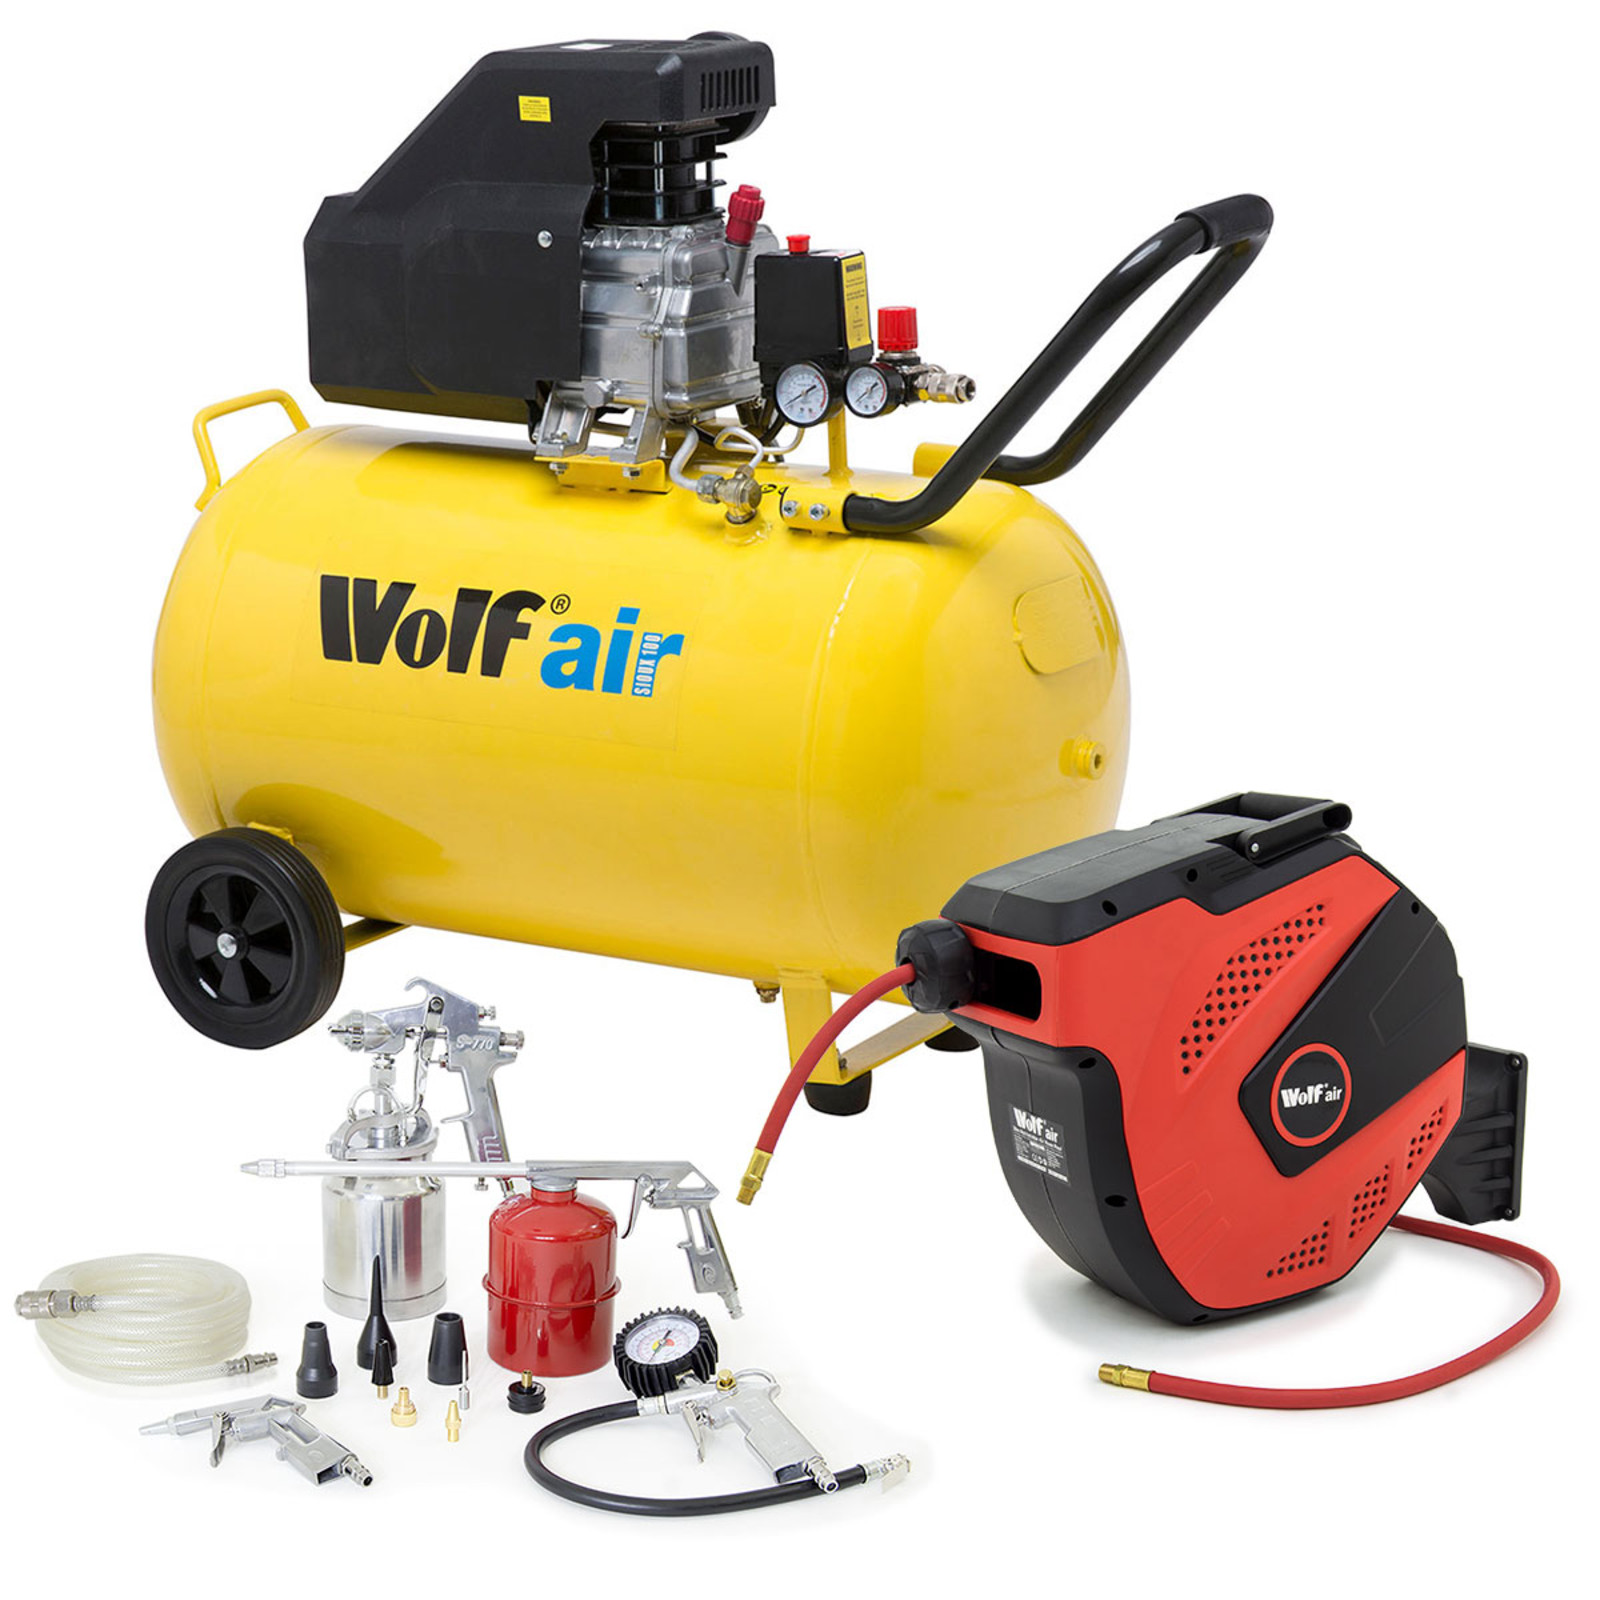 Wolf Sioux 100L Air Compressor 9 6cfm with Air Tool Kit and 20m Hose Reel